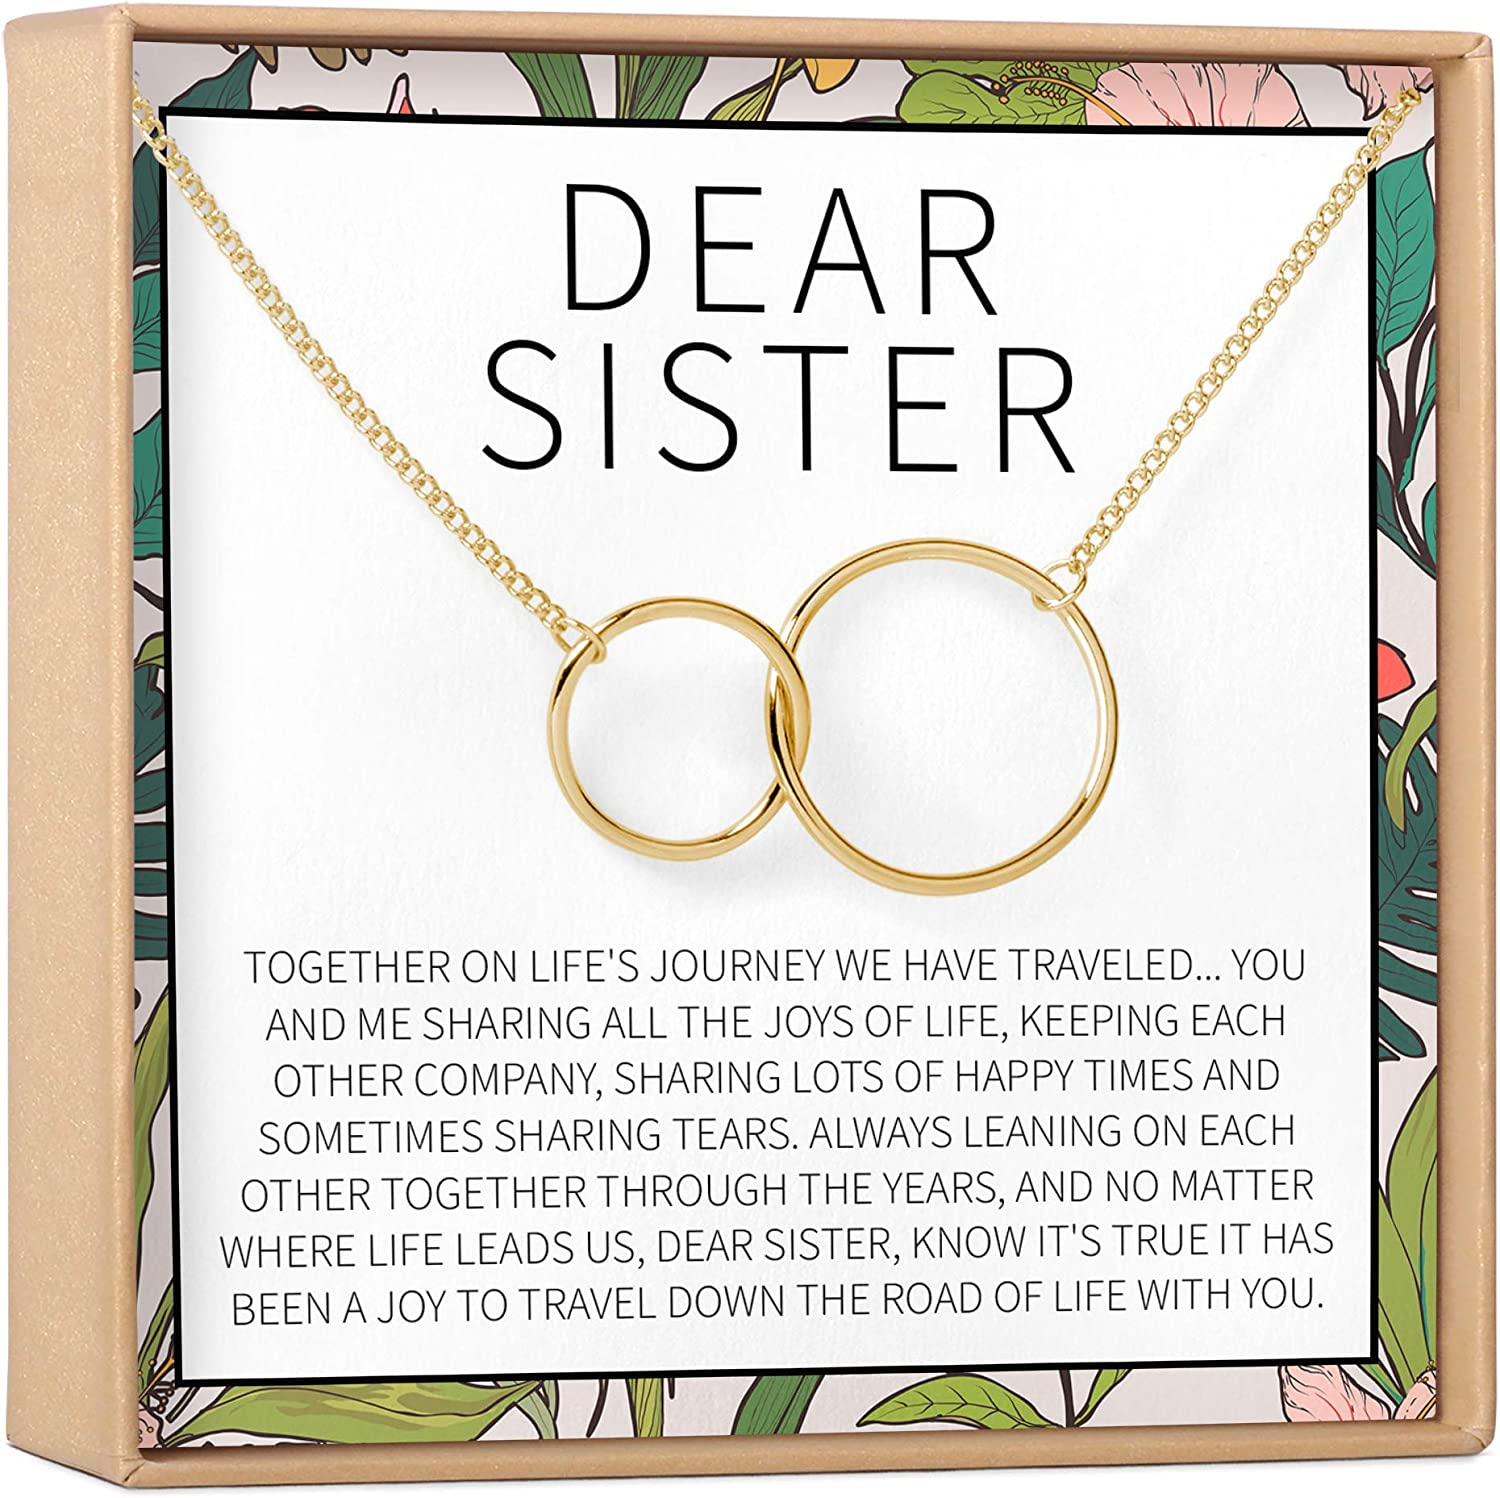 Sisters Gift Necklace: Popular products Max 43% OFF Sister Birthday Big 2